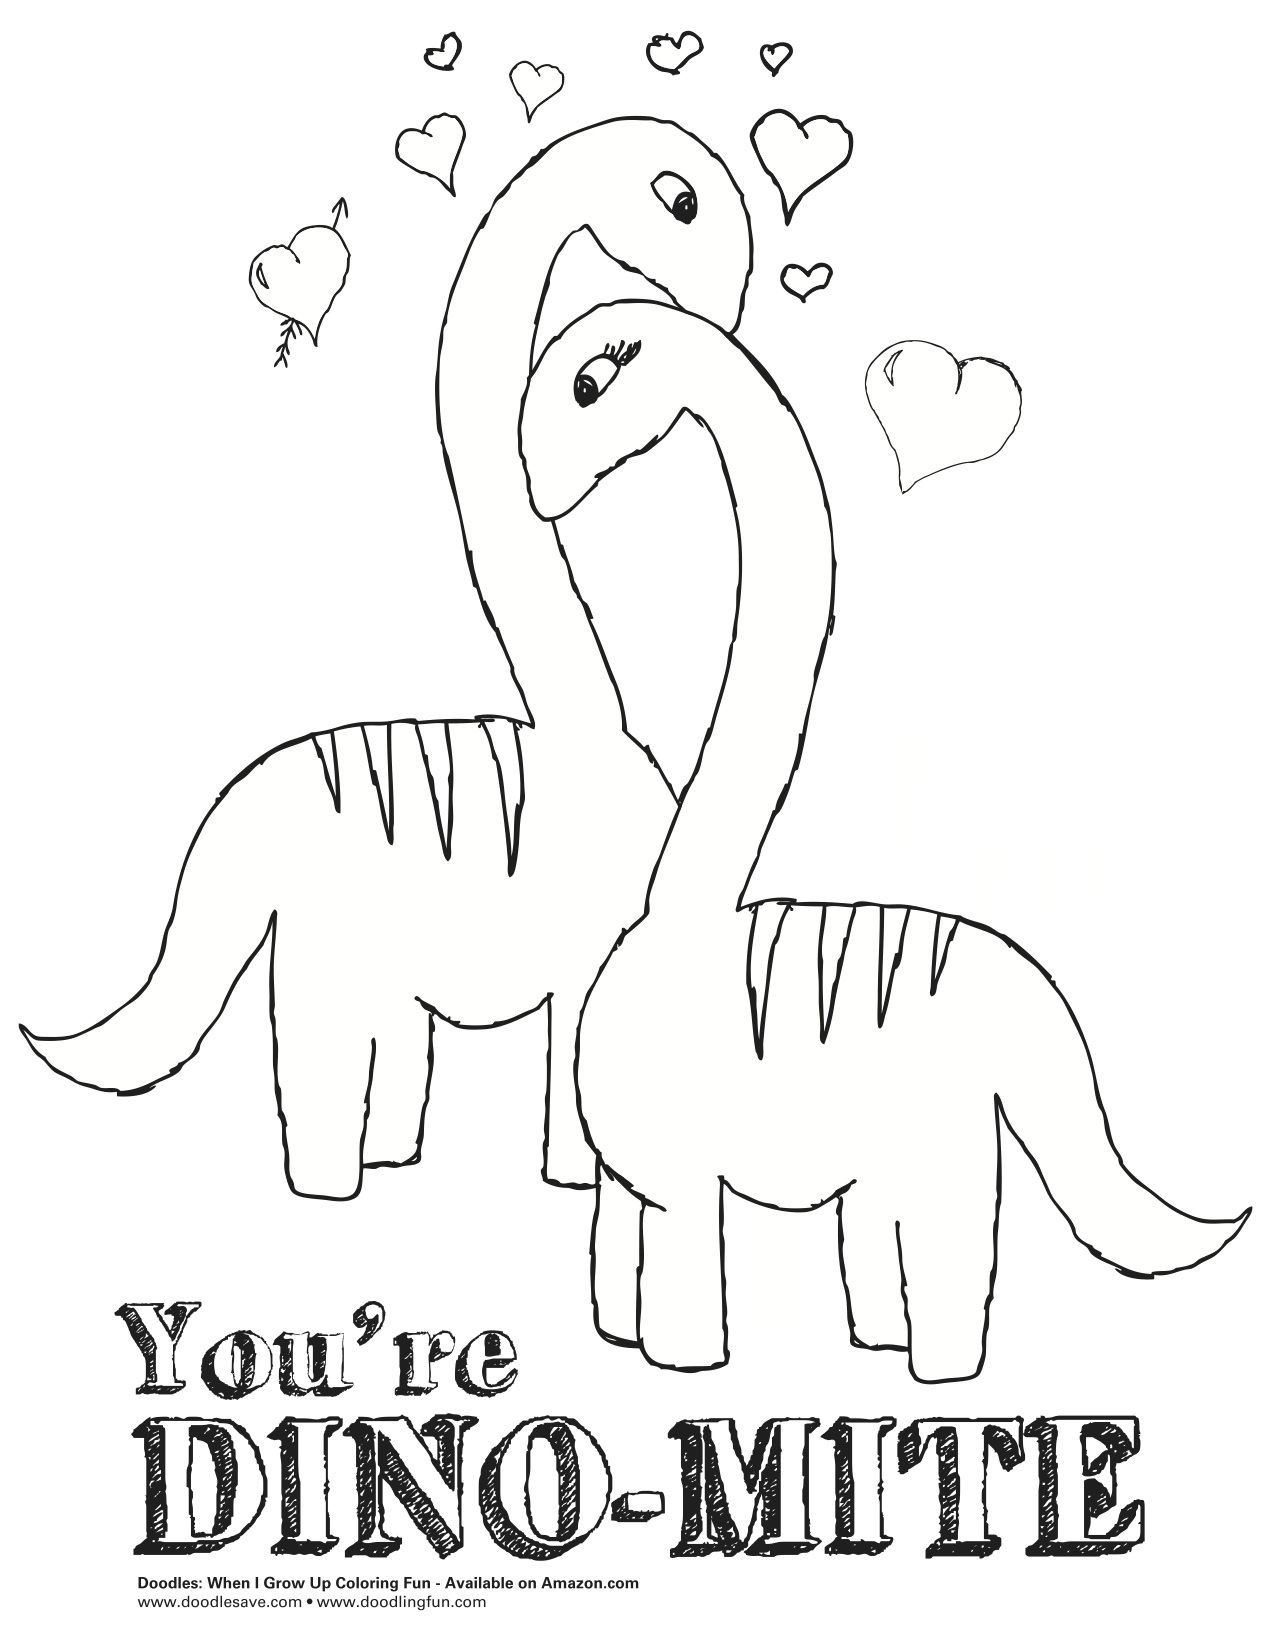 Dinosaur Valentine Coloring Pages At Getdrawings Com Free For